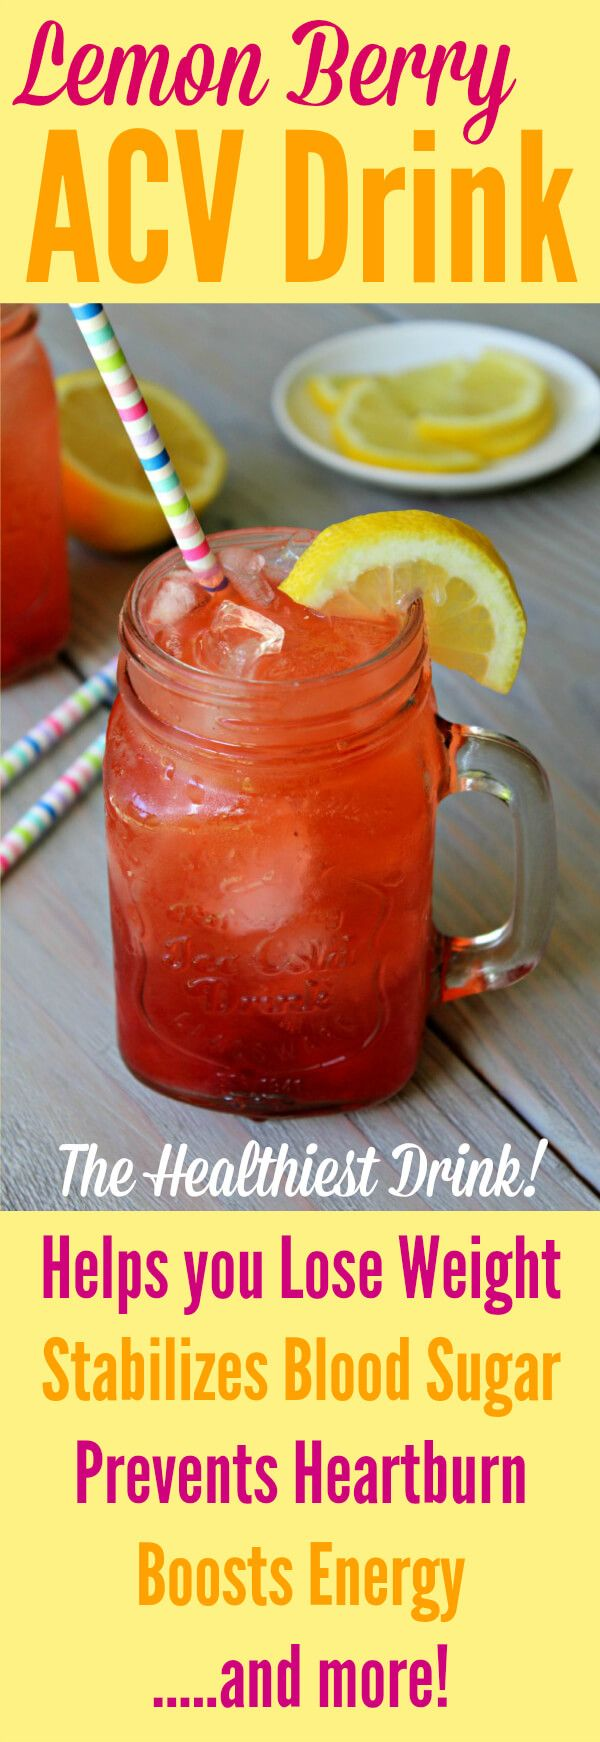 Berry Lemon ACV Drink Recipe - this is actually really good!